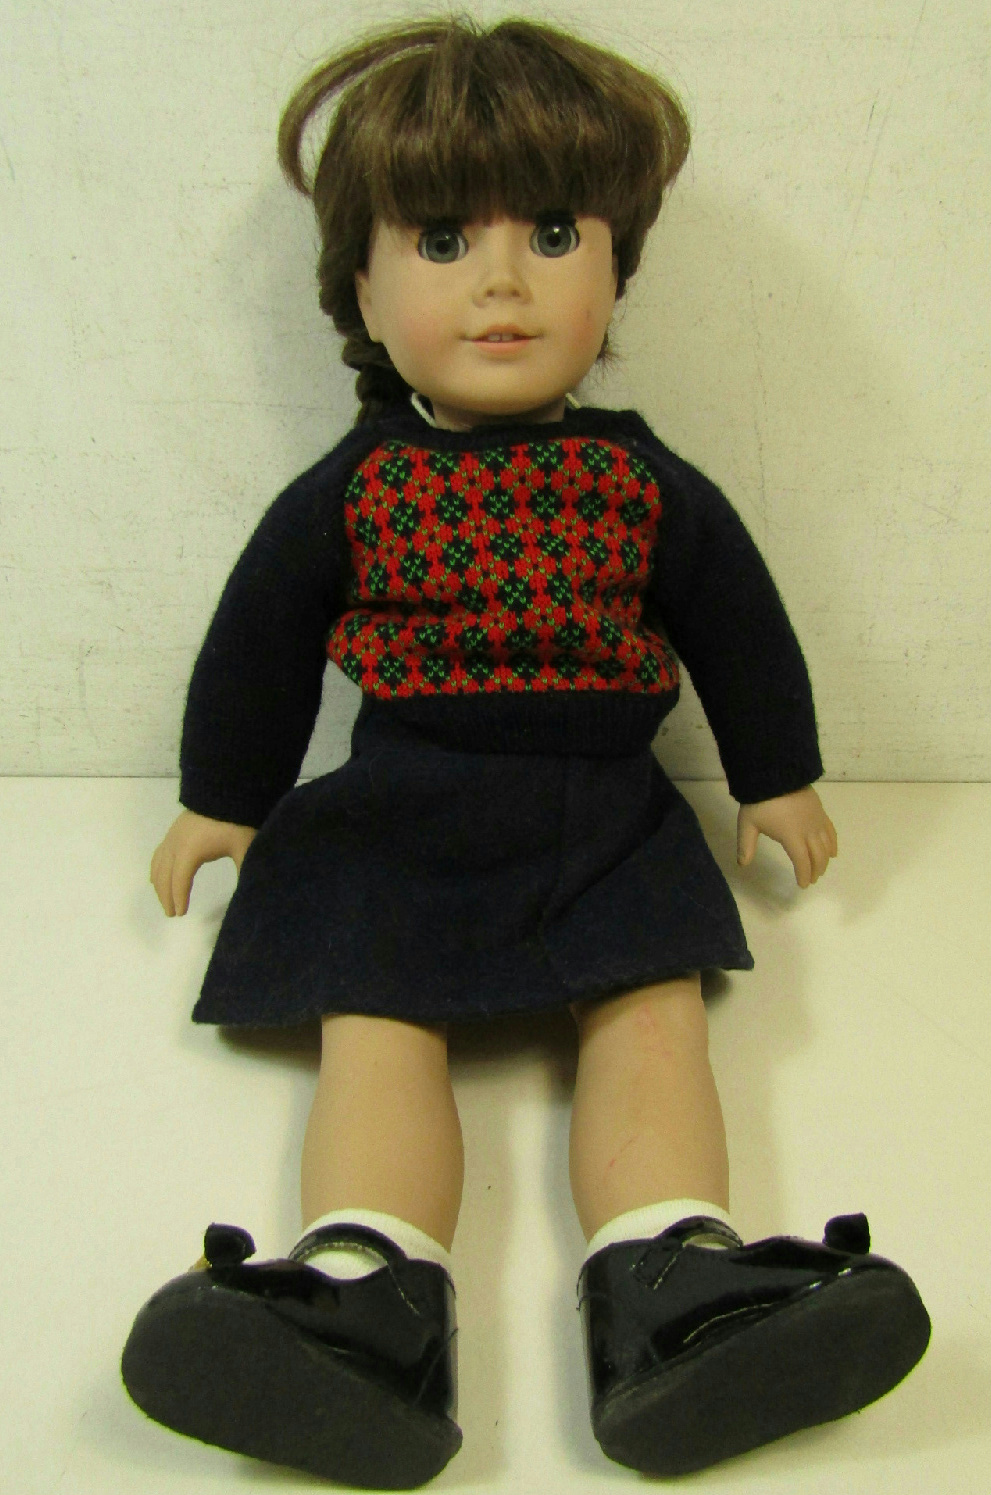 pleasant company american girl classic 18 inch molly doll w original outfit ebay. Black Bedroom Furniture Sets. Home Design Ideas